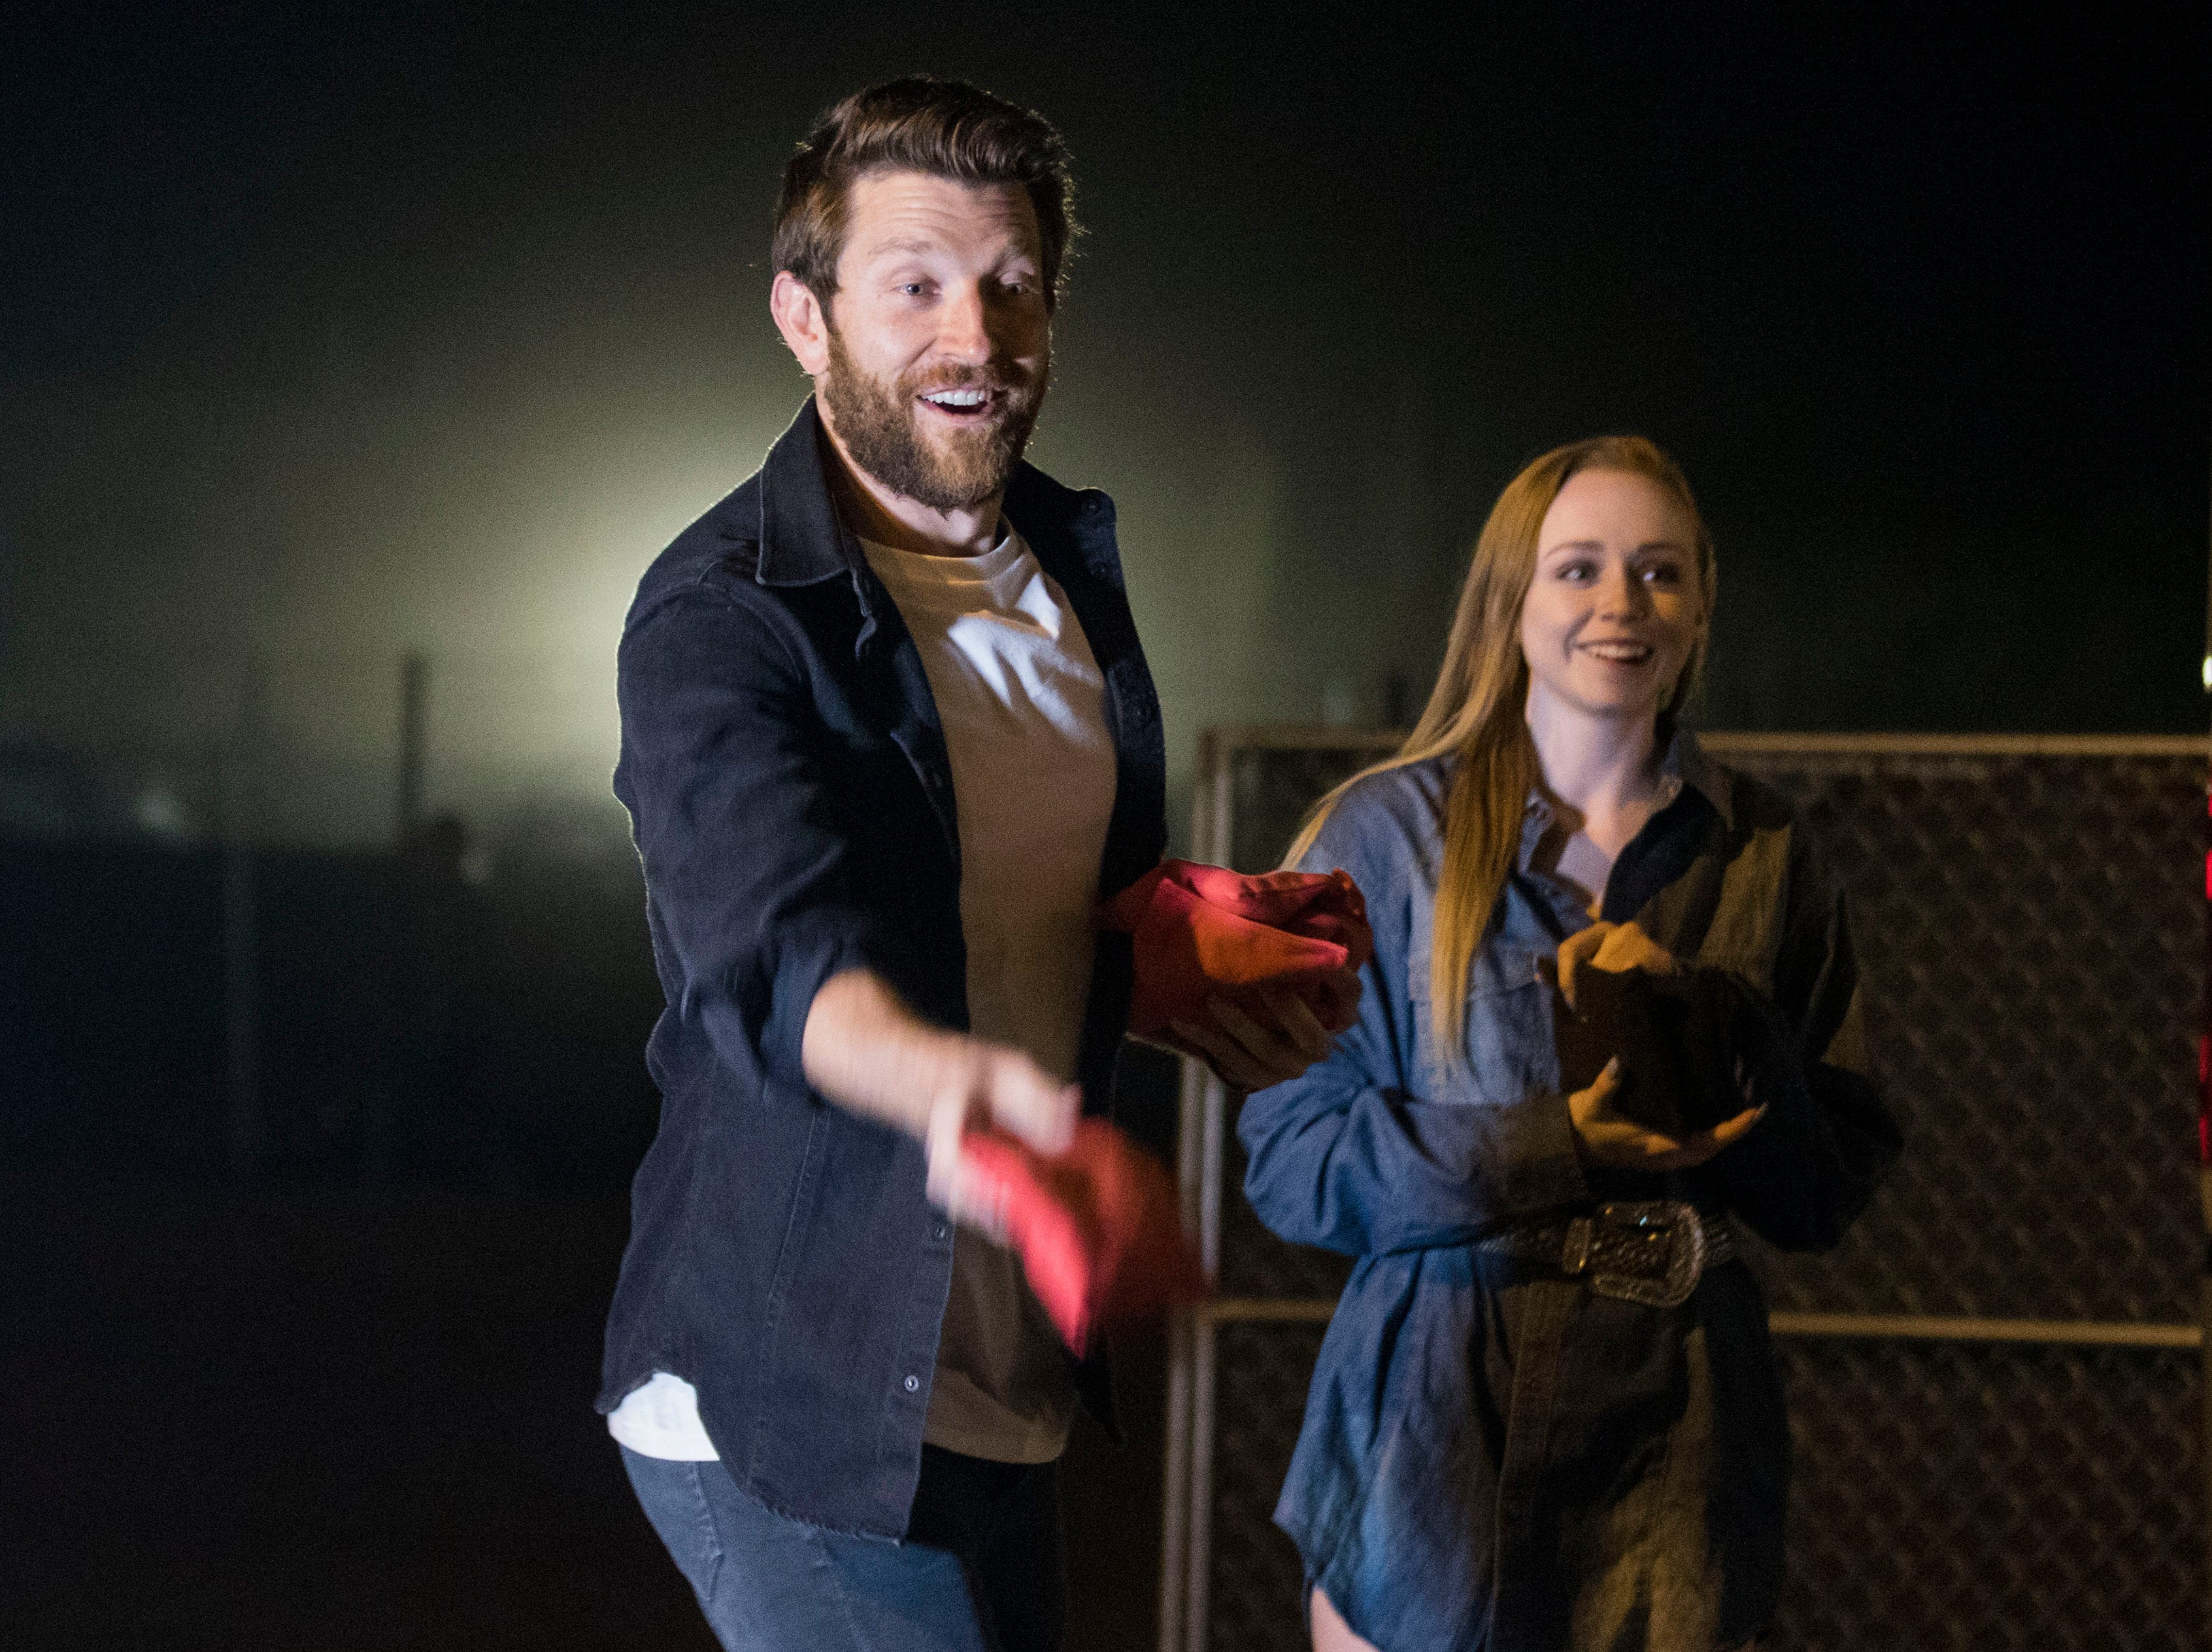 Country superstar Brett Eldredge plays a game of cornhole with a lucky young lady. Kayla Coffey of Tucson was picked from the audience for the chance meeting with Eldredge while at Country Thunder Arizona on April 11, 2019, in Florence, Ariz.